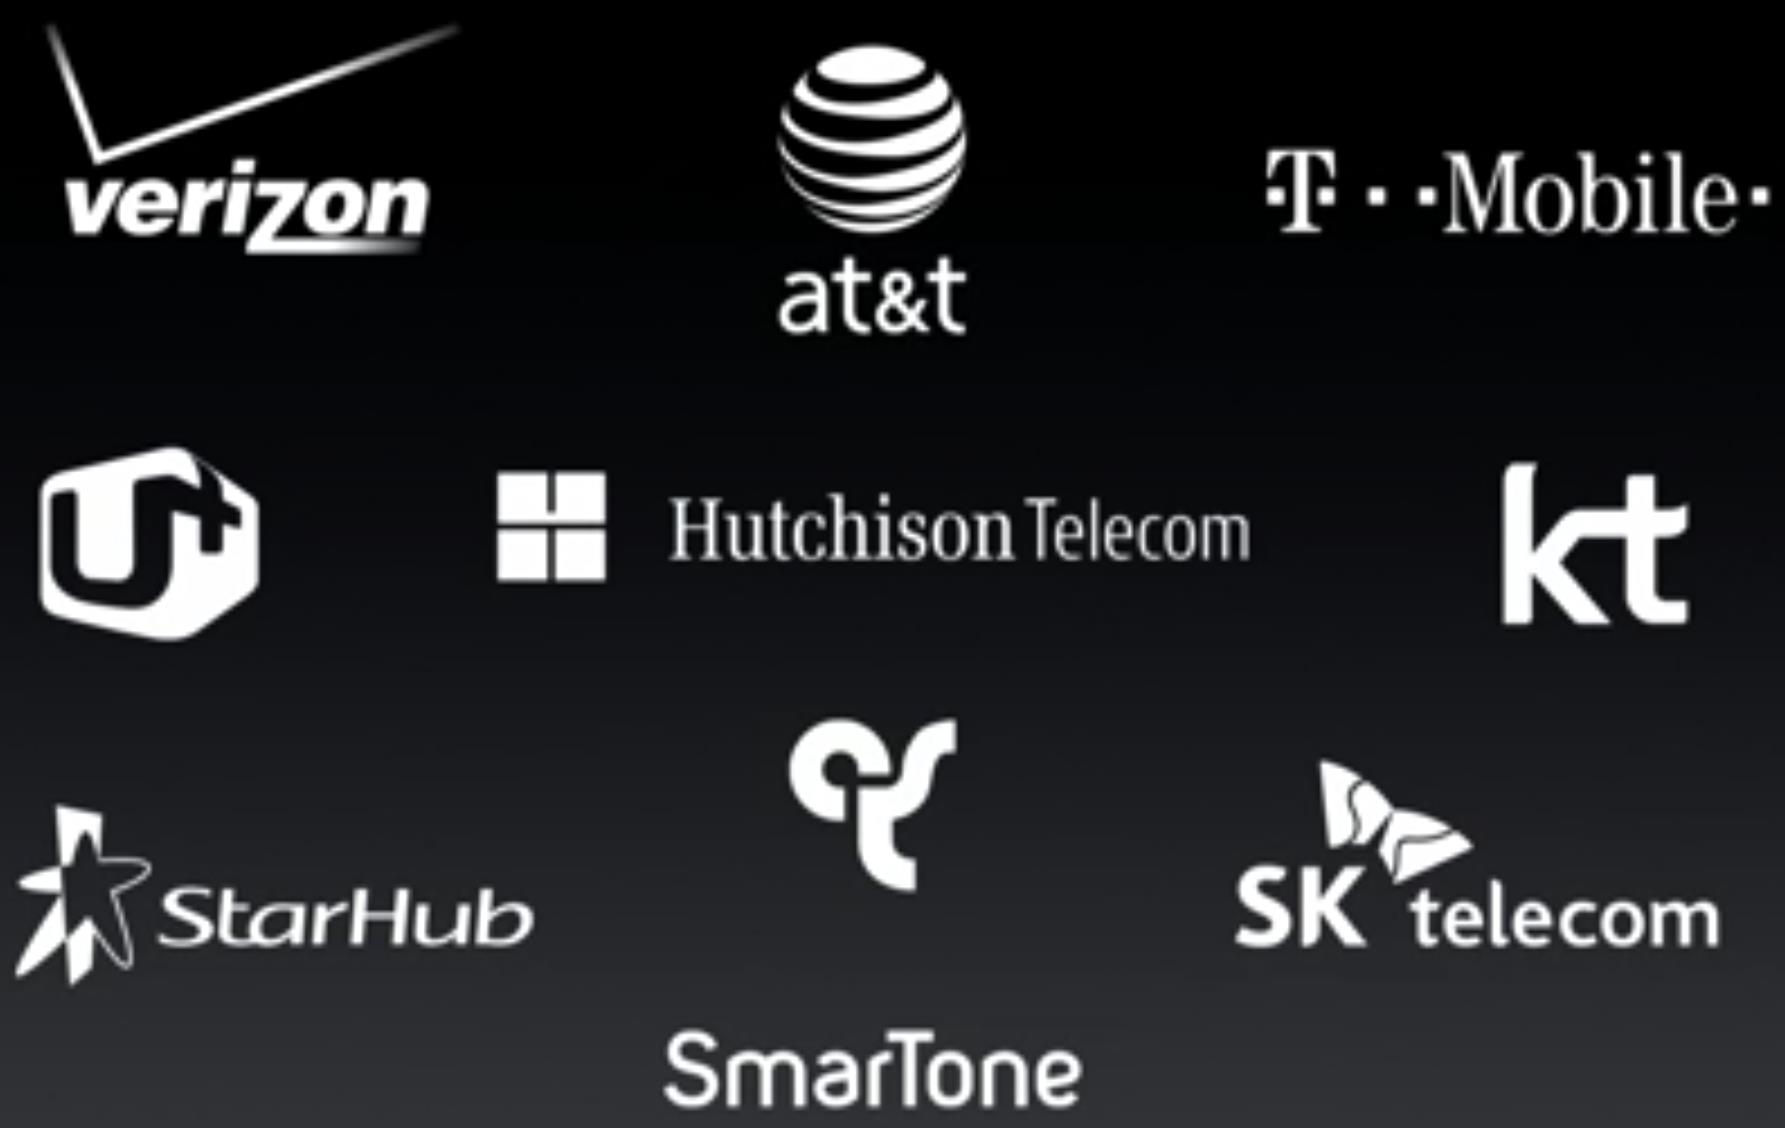 All the mobile operators offering VoLTE on the iPhones at launch